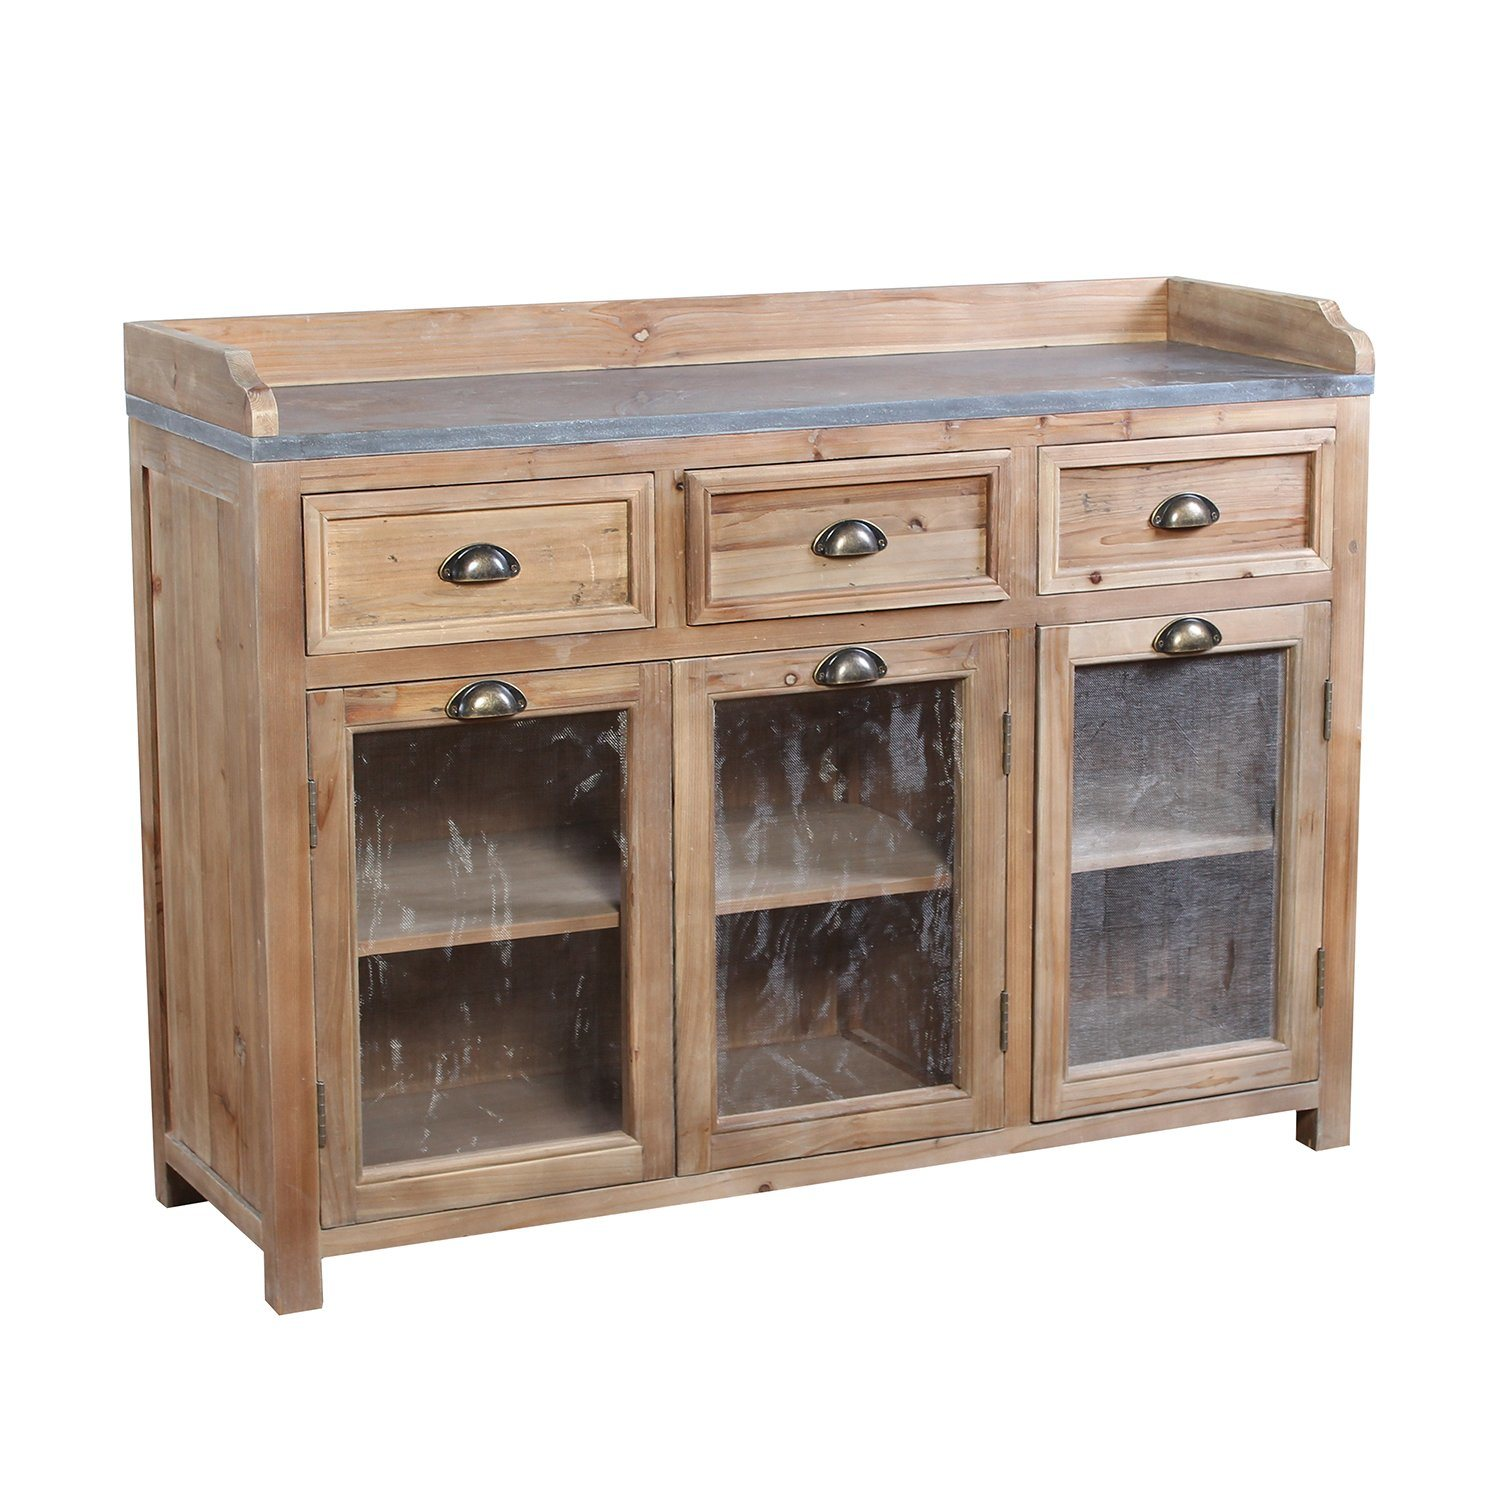 Solid Reclaimed Wood Kitchen Cabinets